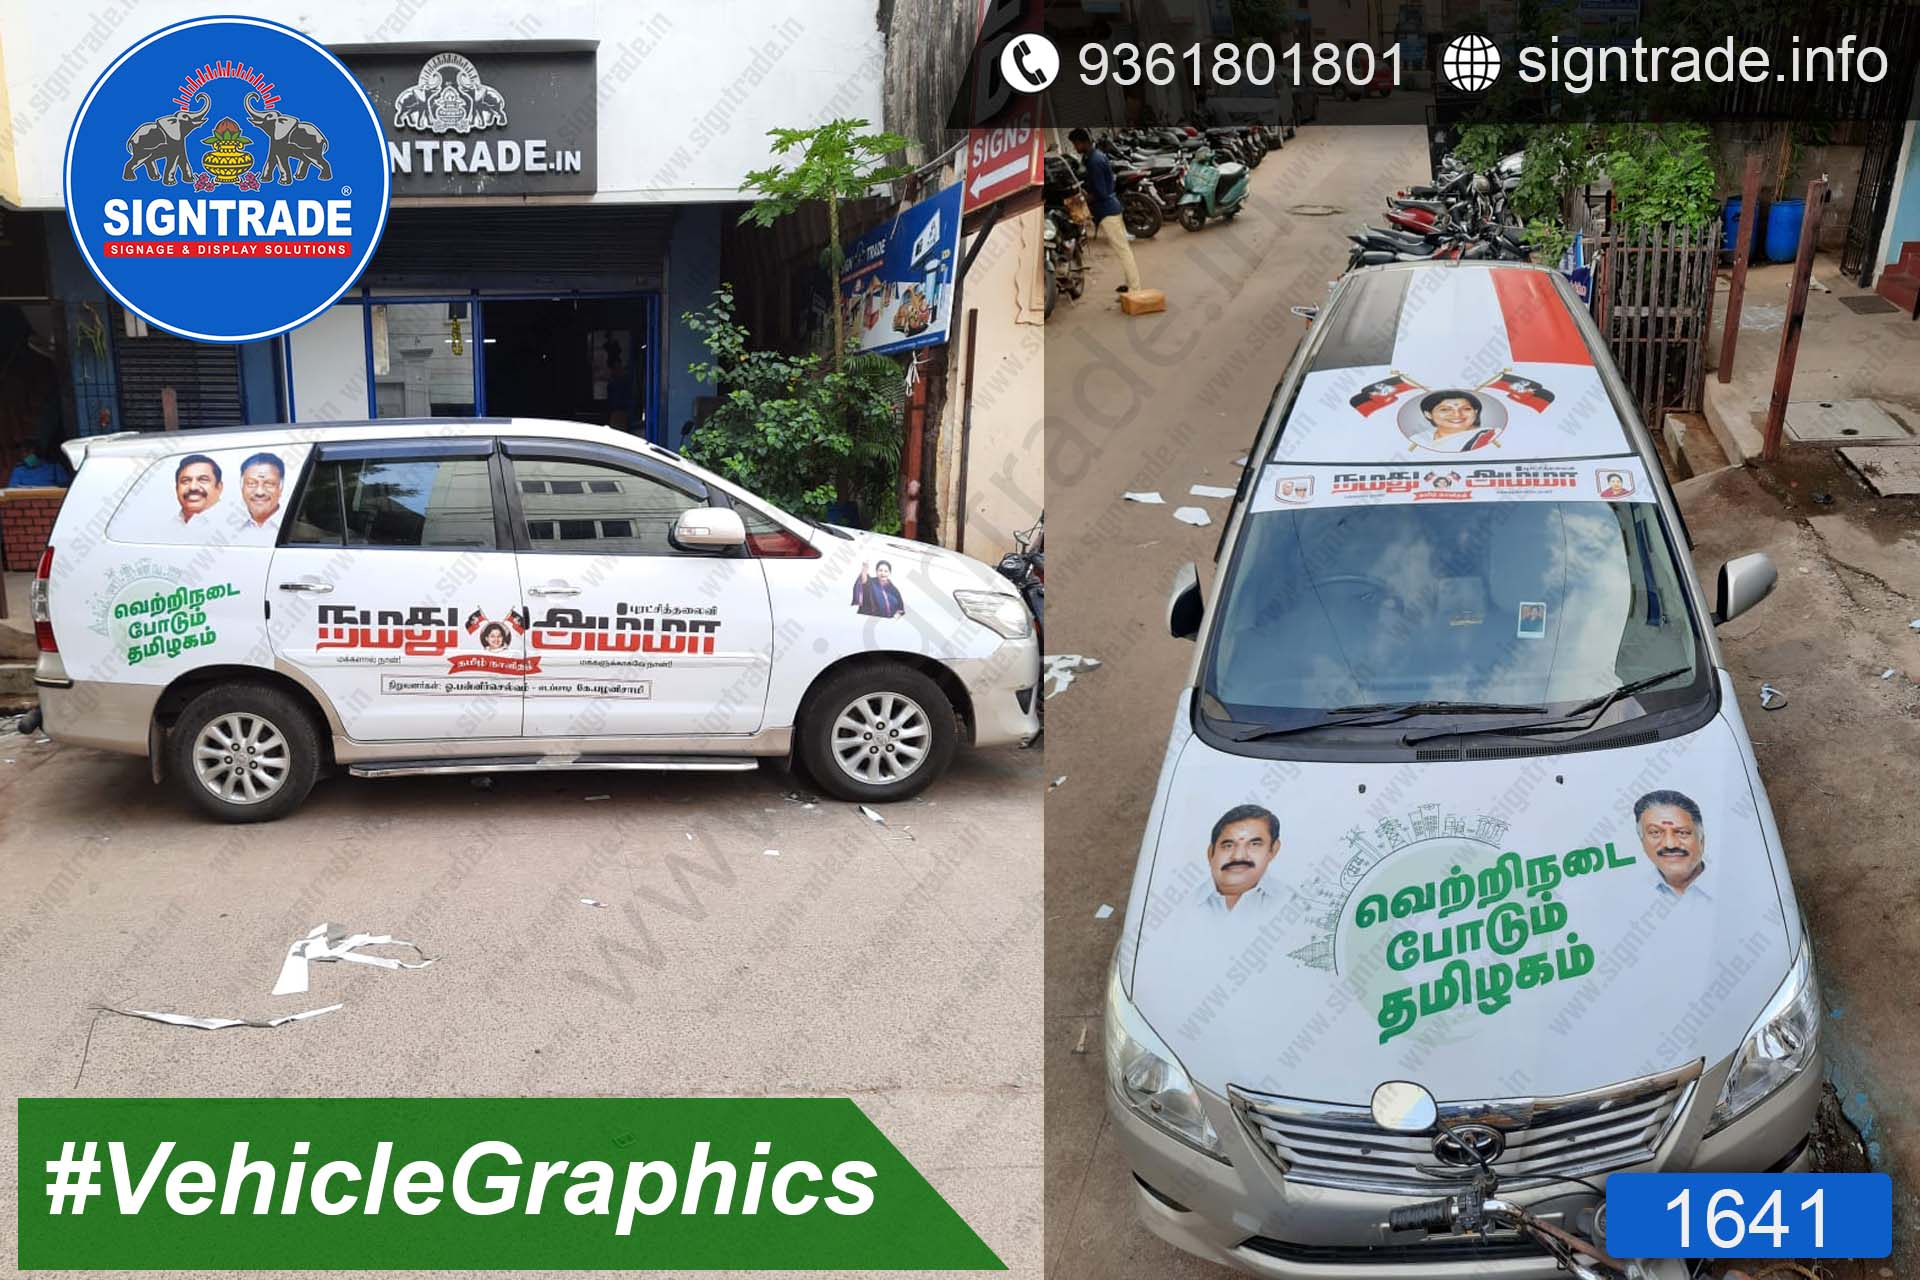 ADMK - Car Graphics - Van Graphics - SIGNTRADE - Vinyl Printing, Van Graphics in Service in Chennai